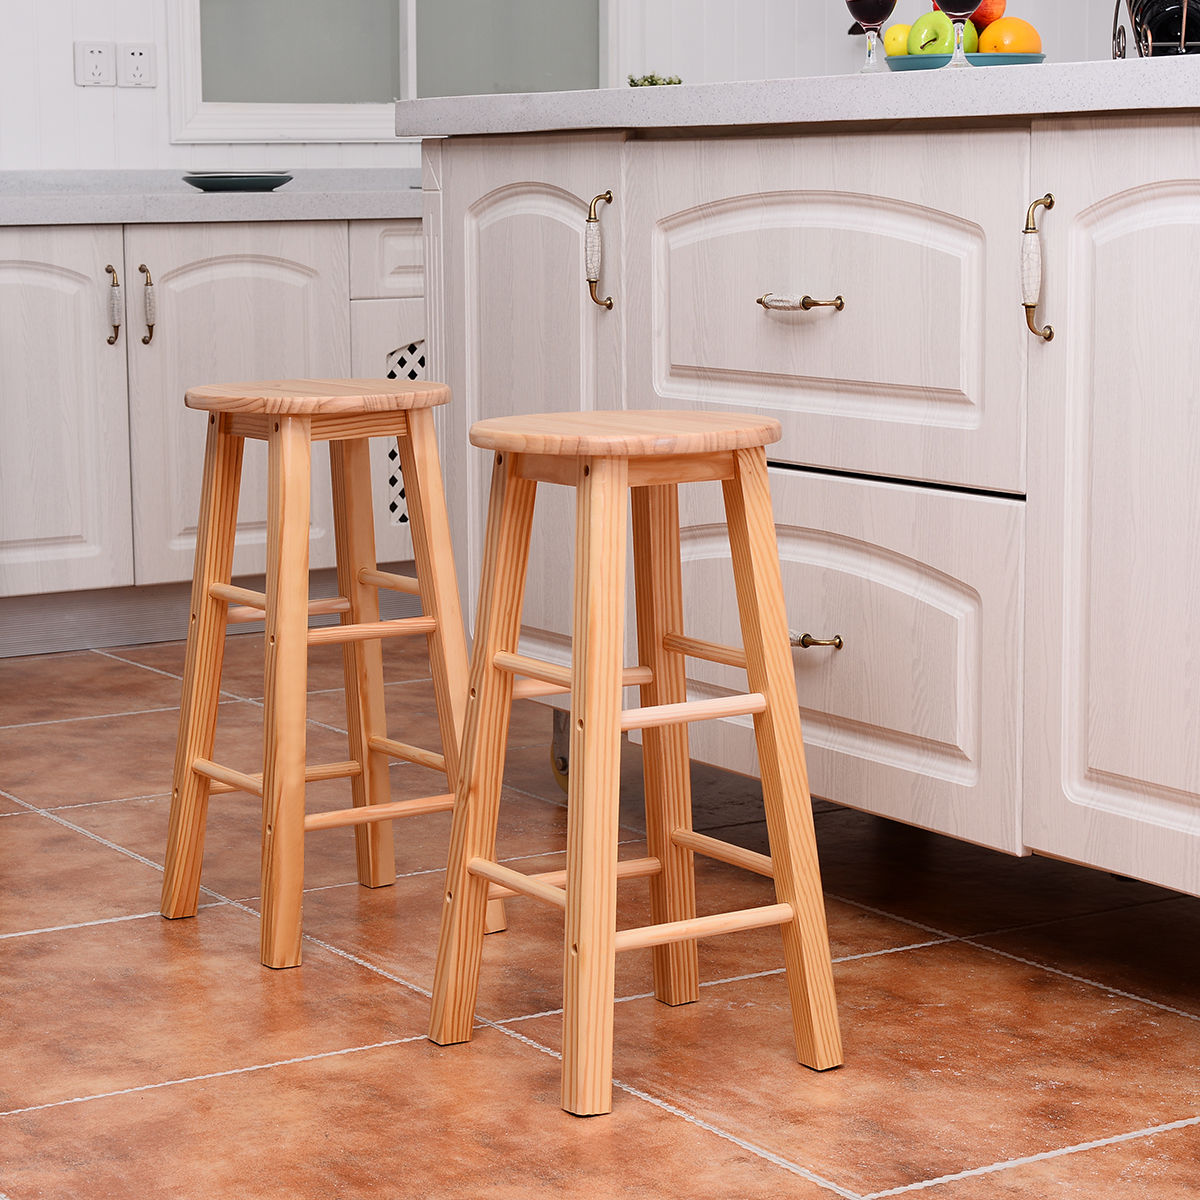 stool chair for kitchen counter gray arm set of 2 wood stools bar dining